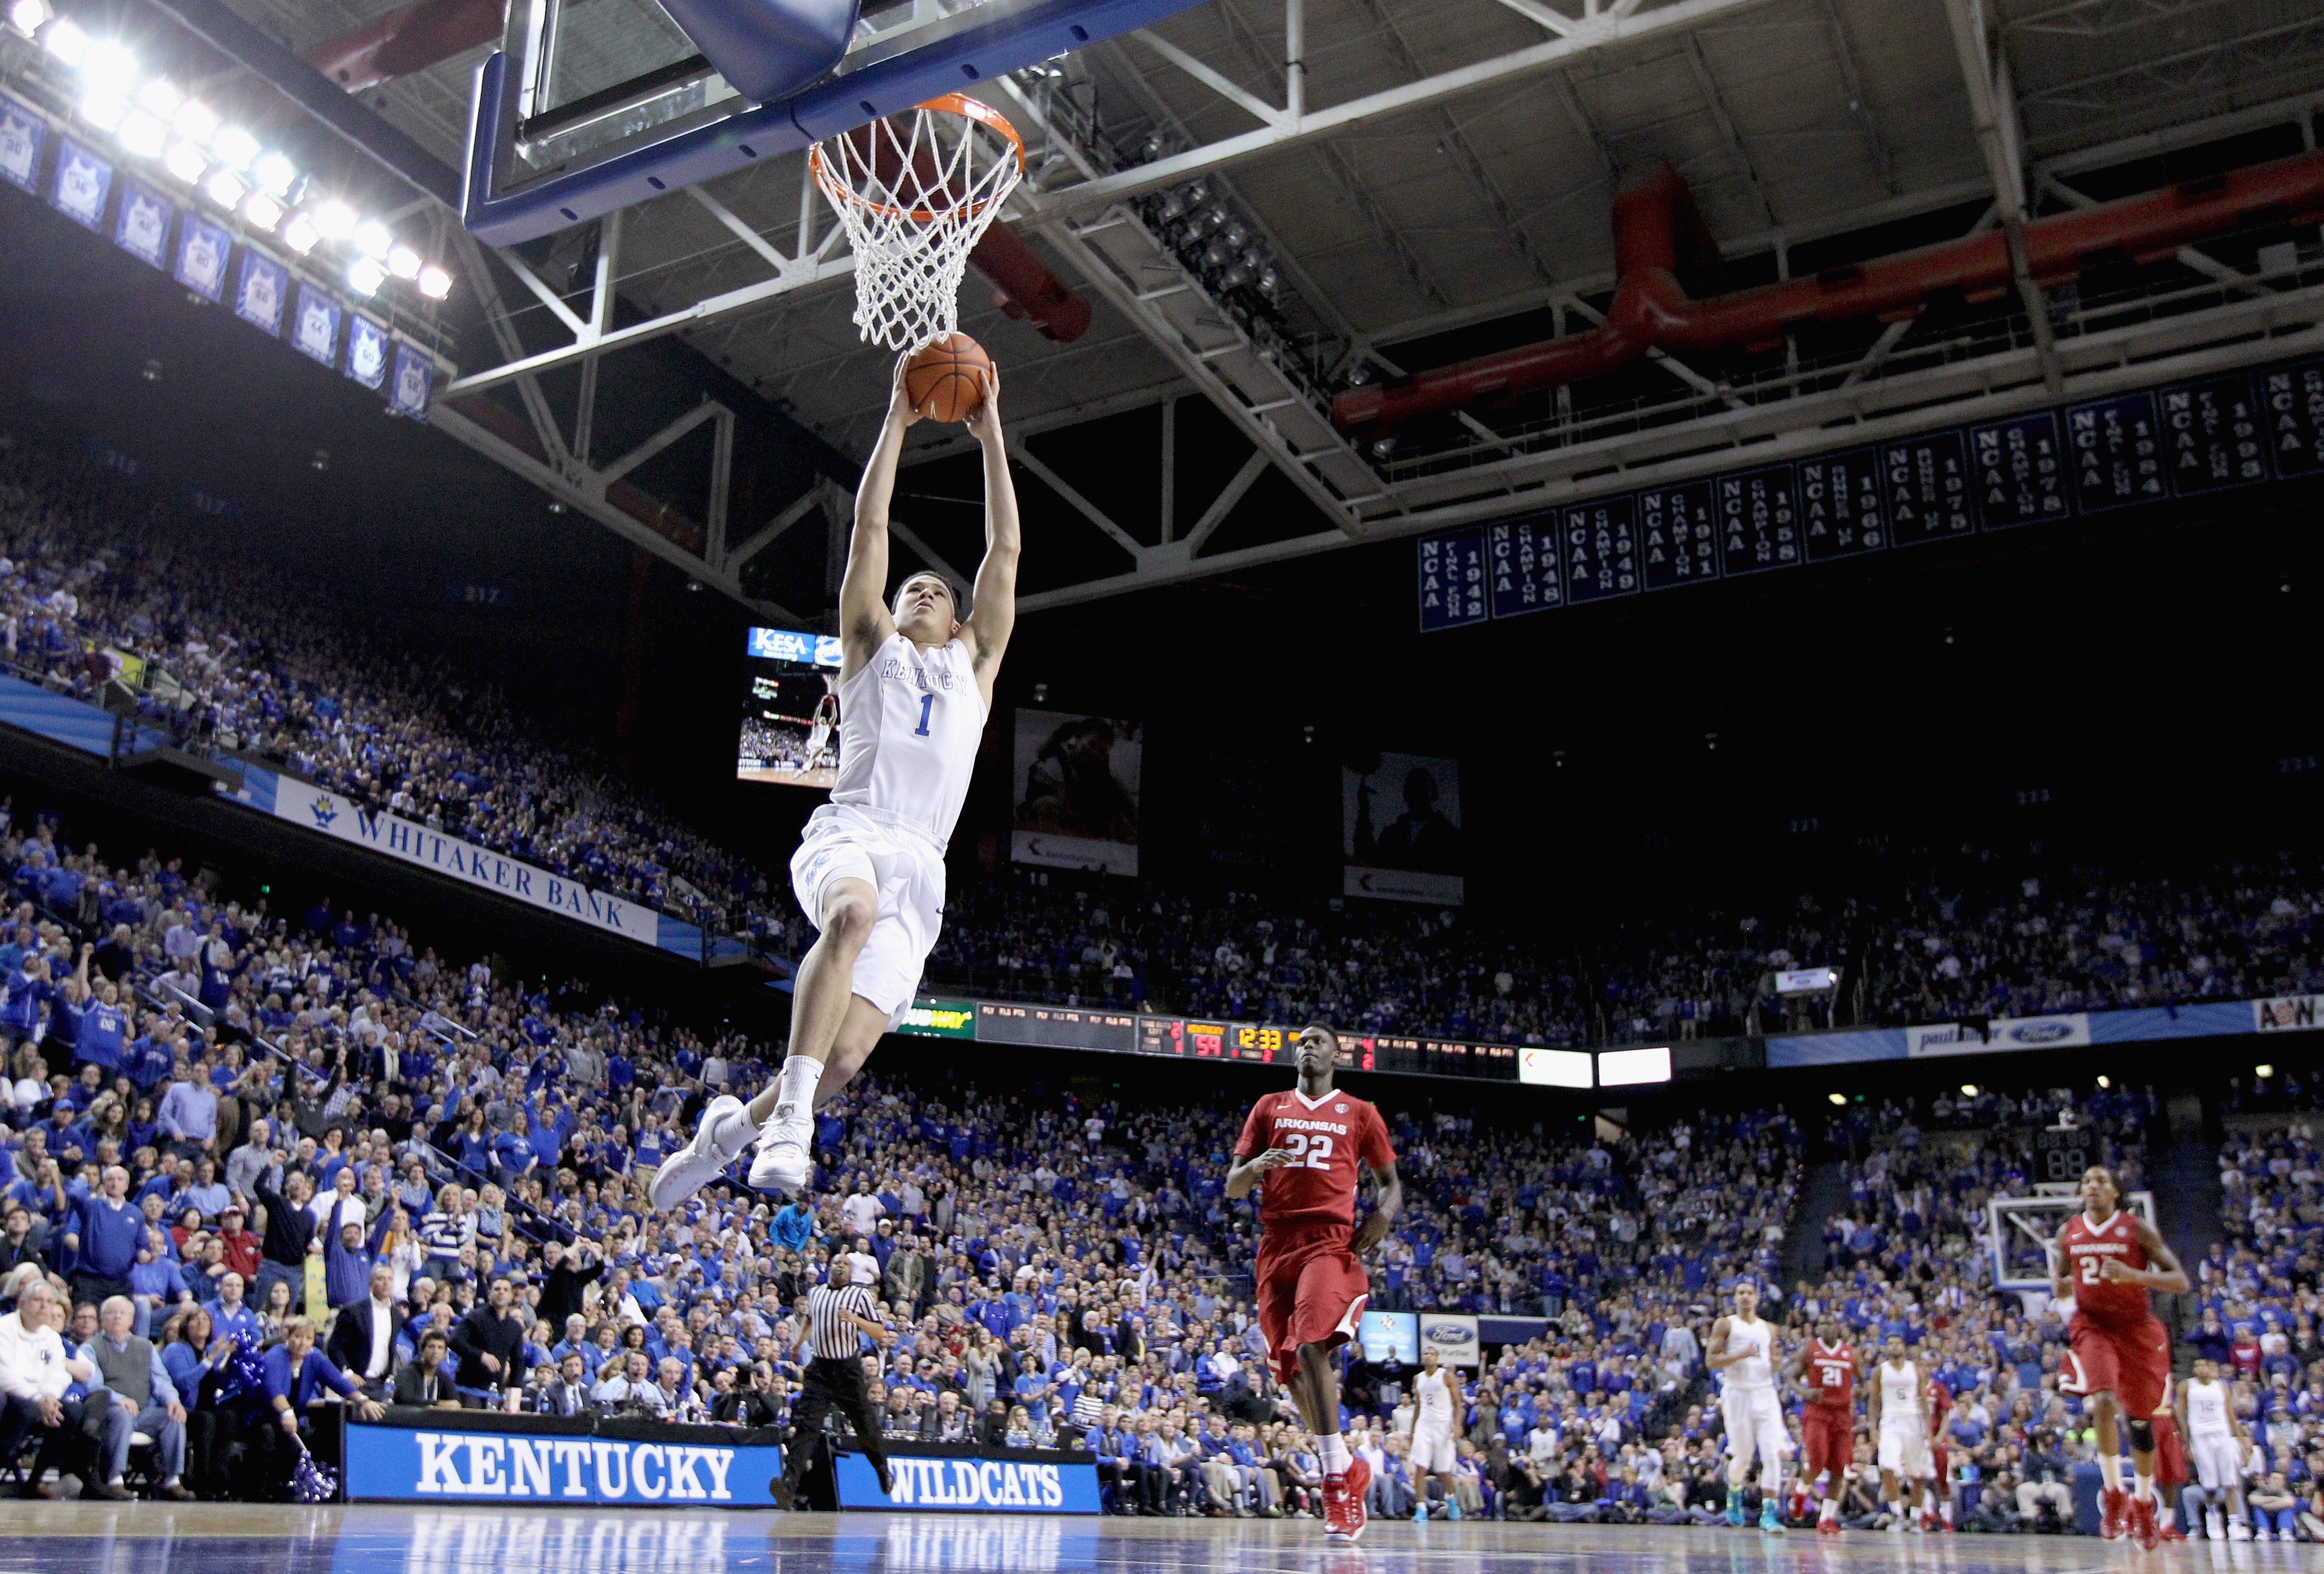 Devin Booker #1 of the Kentucky Wildcats shoots the ball during the game against the Arkansas Razorbacks at Rupp Arena on February 28, 2015 in Lexington, Kentucky.